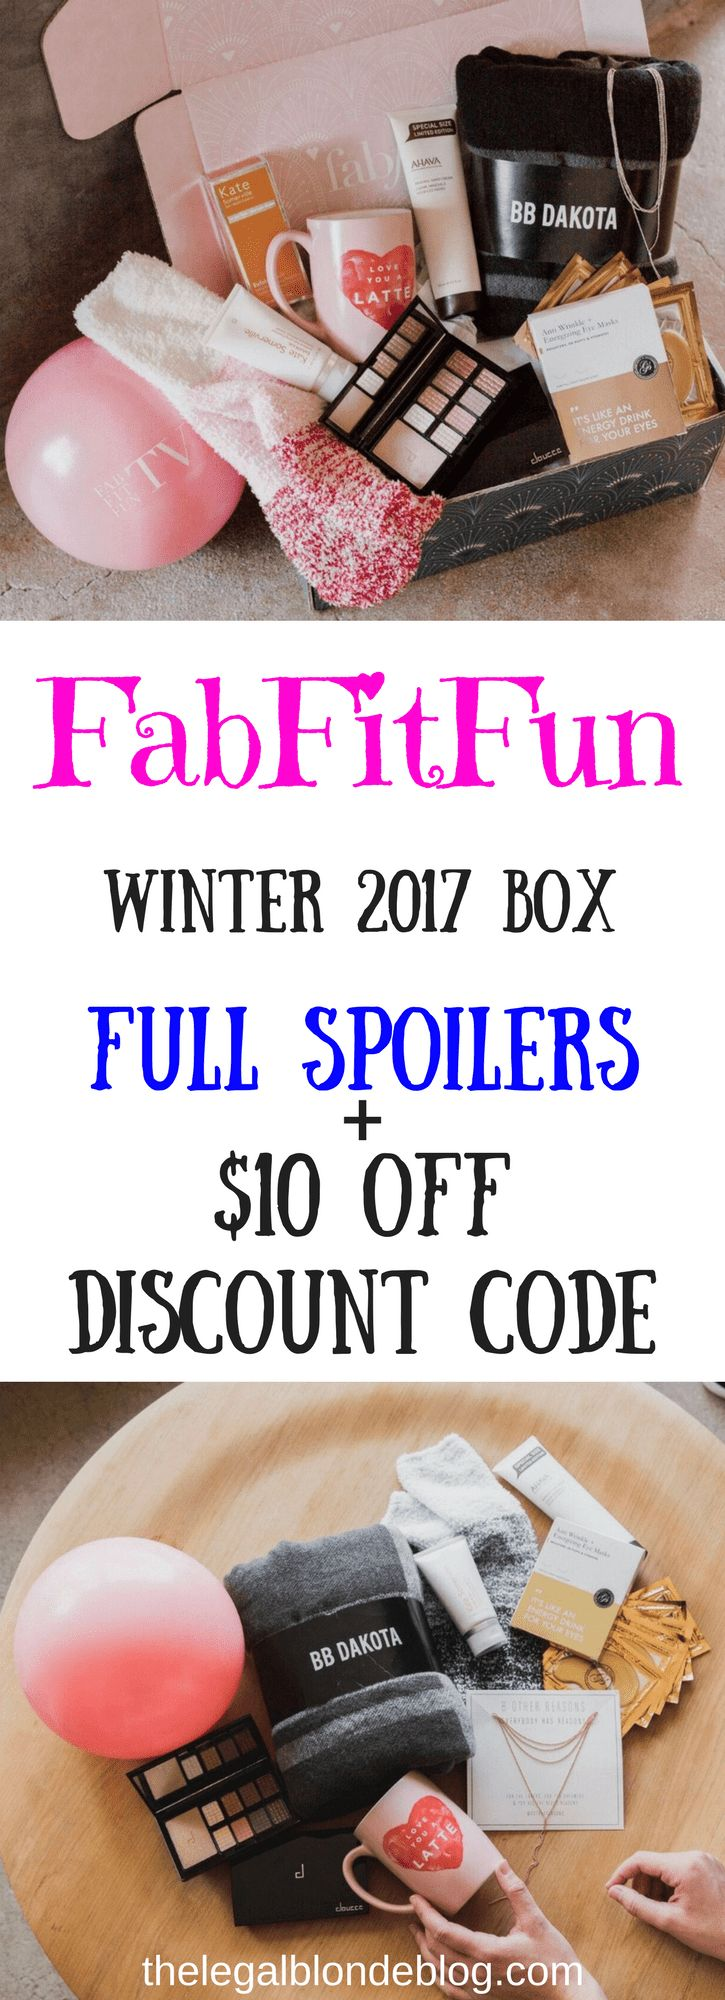 So obsessed with the FabFitFun Winter 2017 box! Check out all the spoilers!